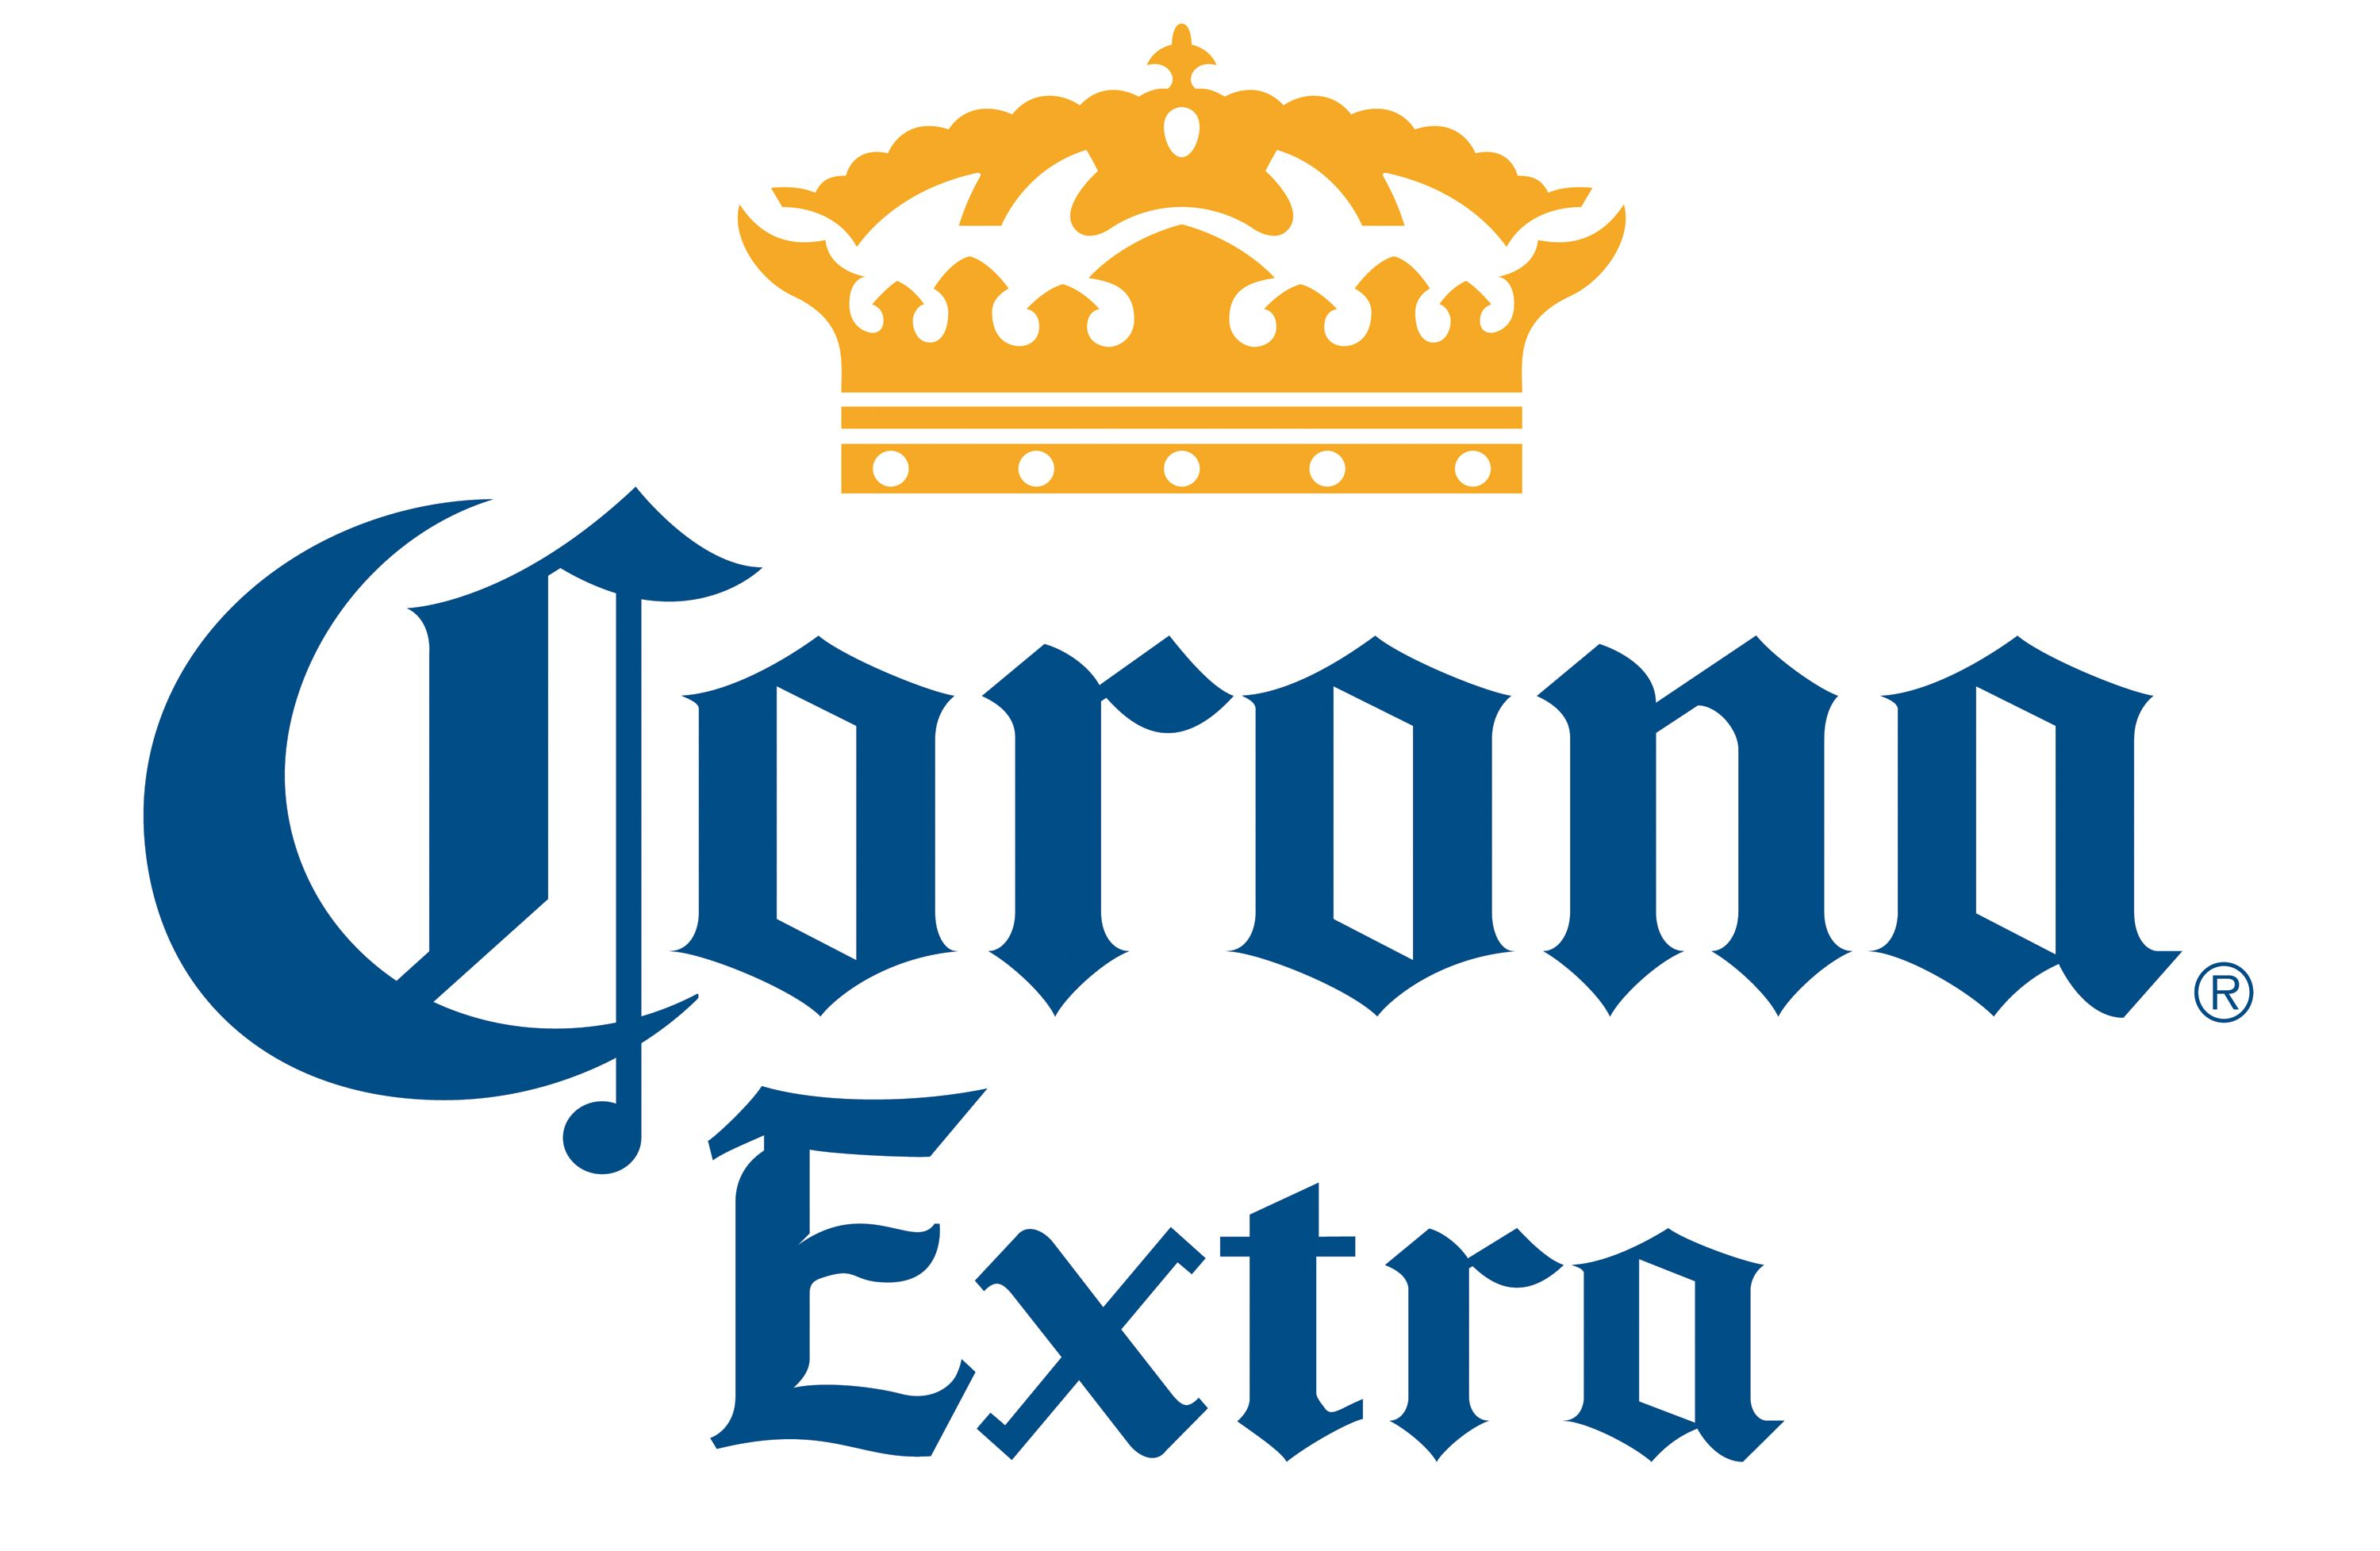 The Font Fits Very Well With The Design Of The Crown It Gives It An Antiquated Look Corona Beer Bottle Drawing Bottle Drawing